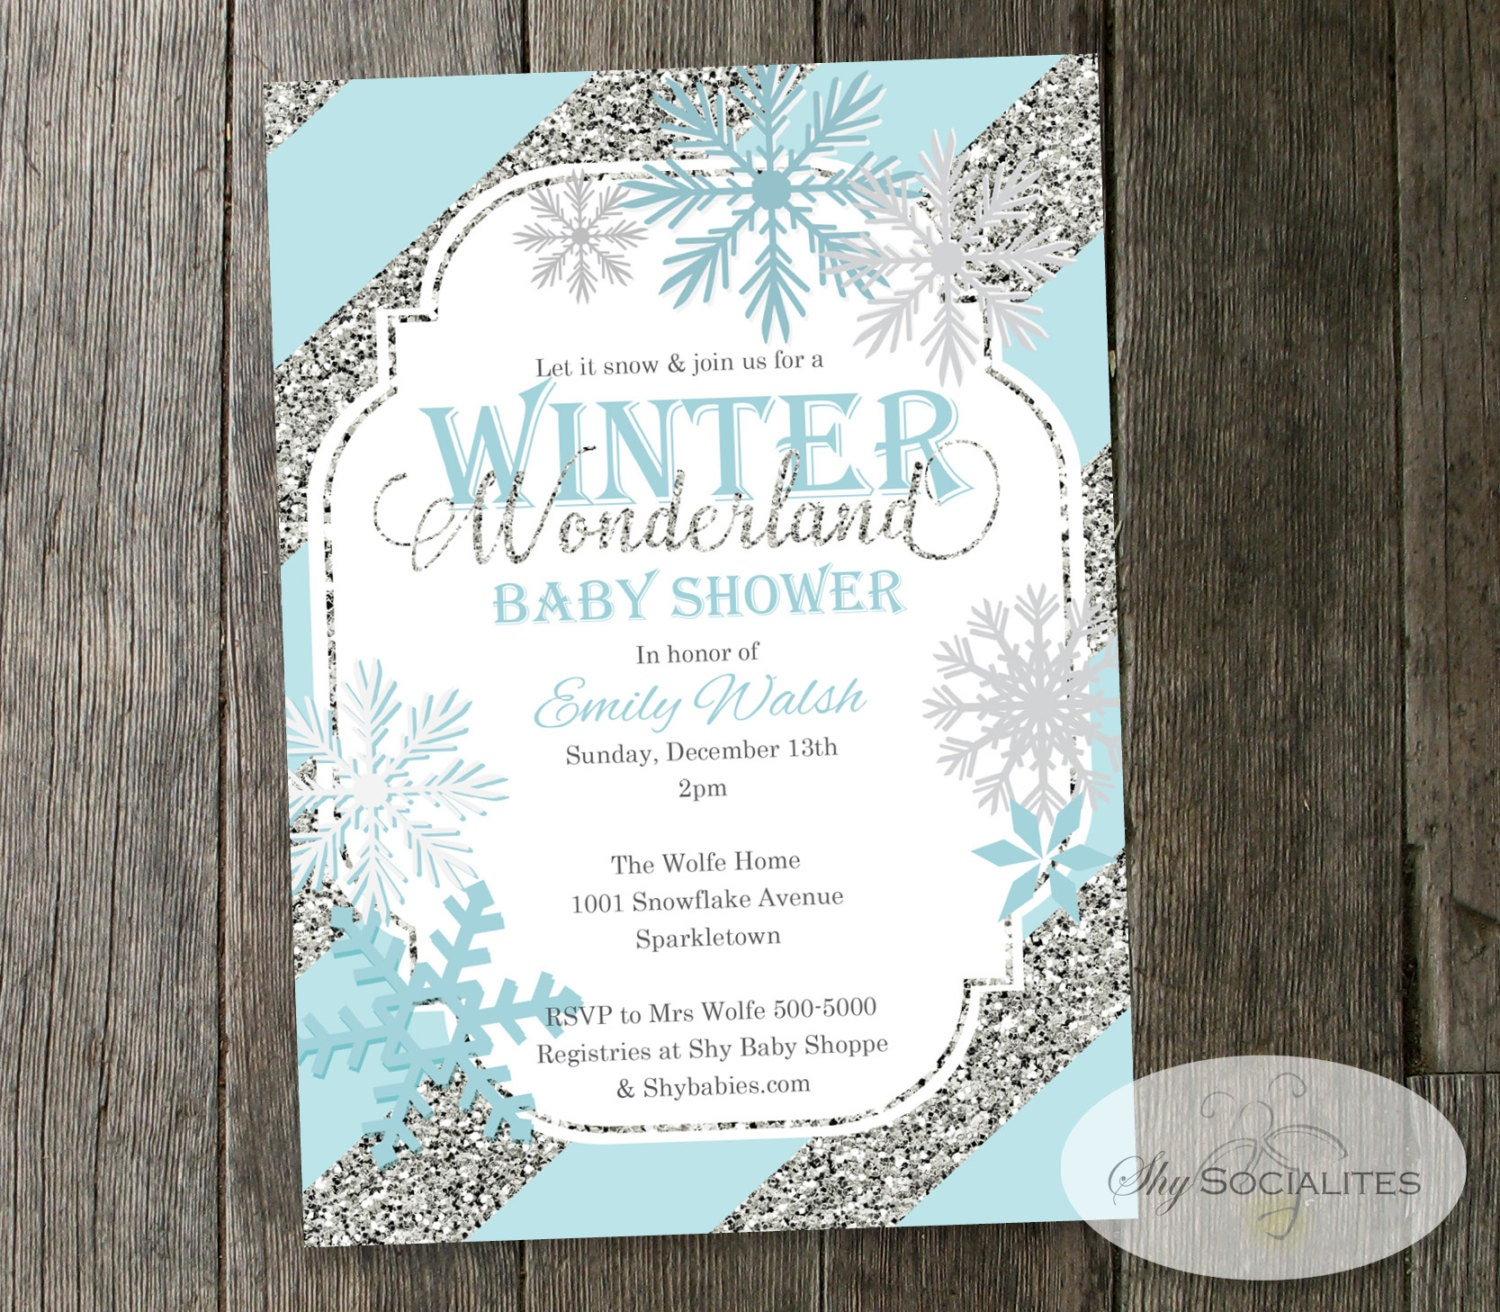 Winter Wonderland Baby Shower Invitation Snowflakes Blue &